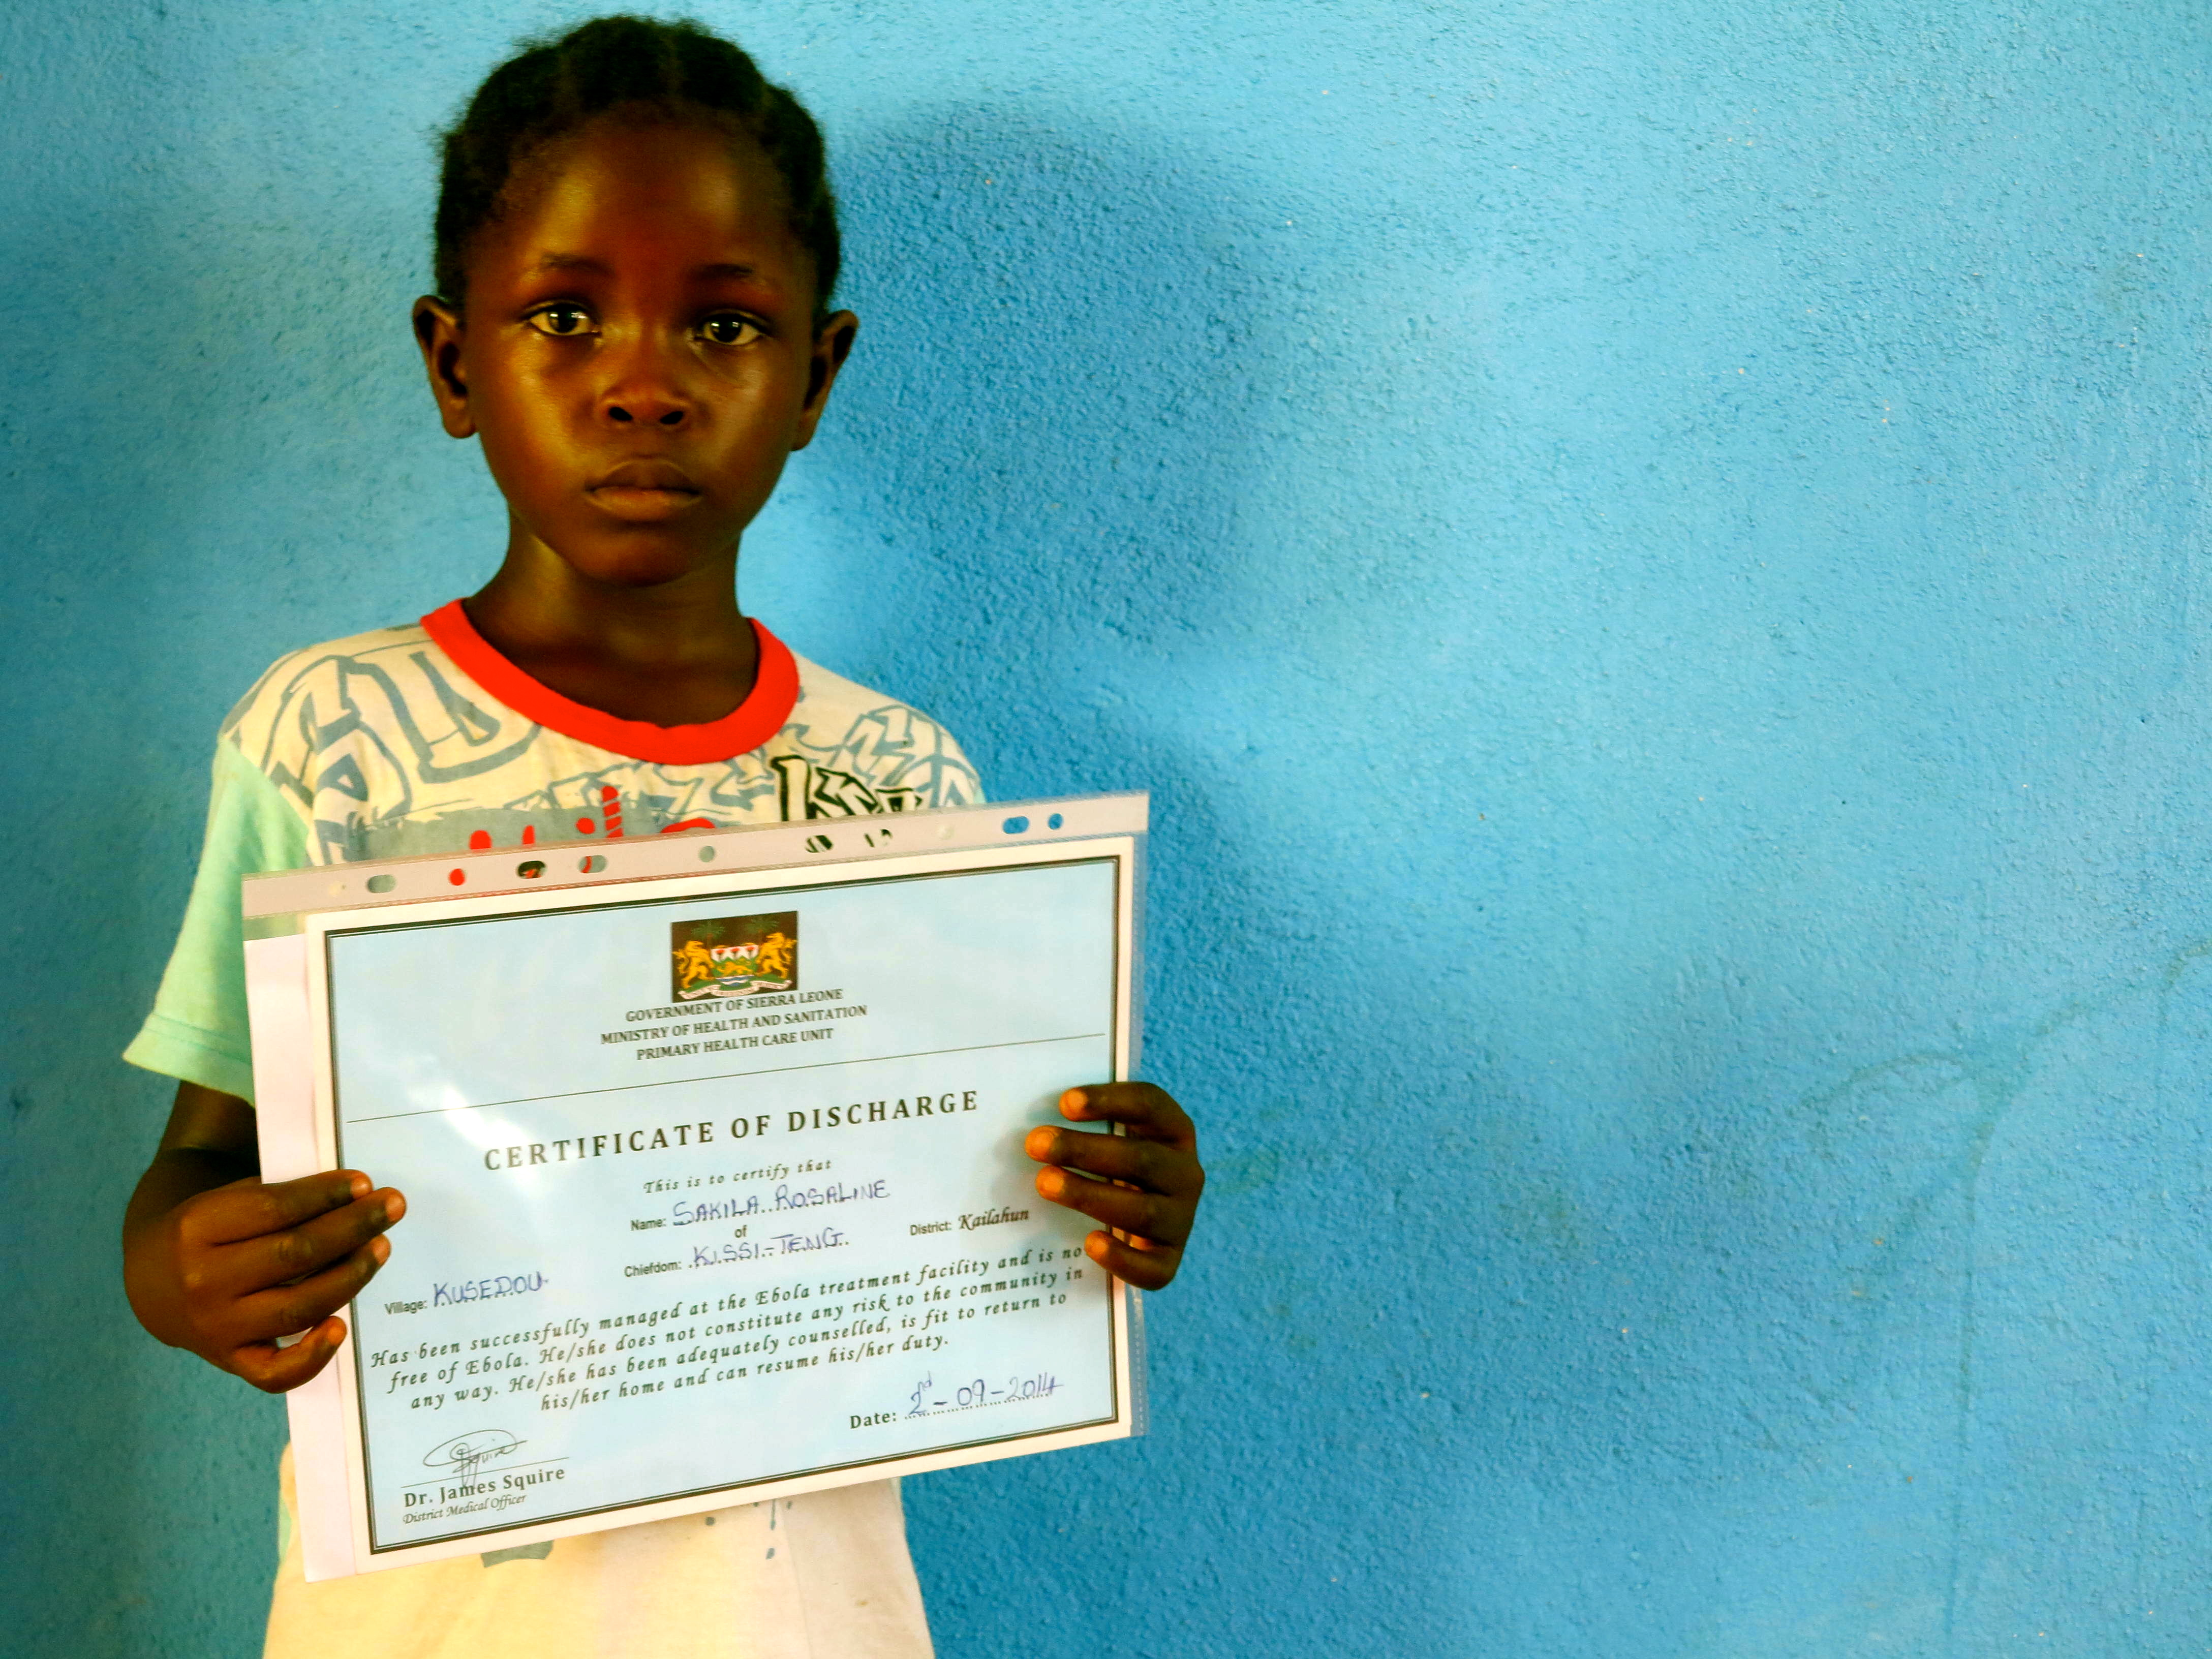 Rose shows off her certificate of good health that was issued to her by the Ministry of Health and Sanitation when she left the Ebola treatment centre. (c) UNICEF Sierra Leone/2014/Dunlop